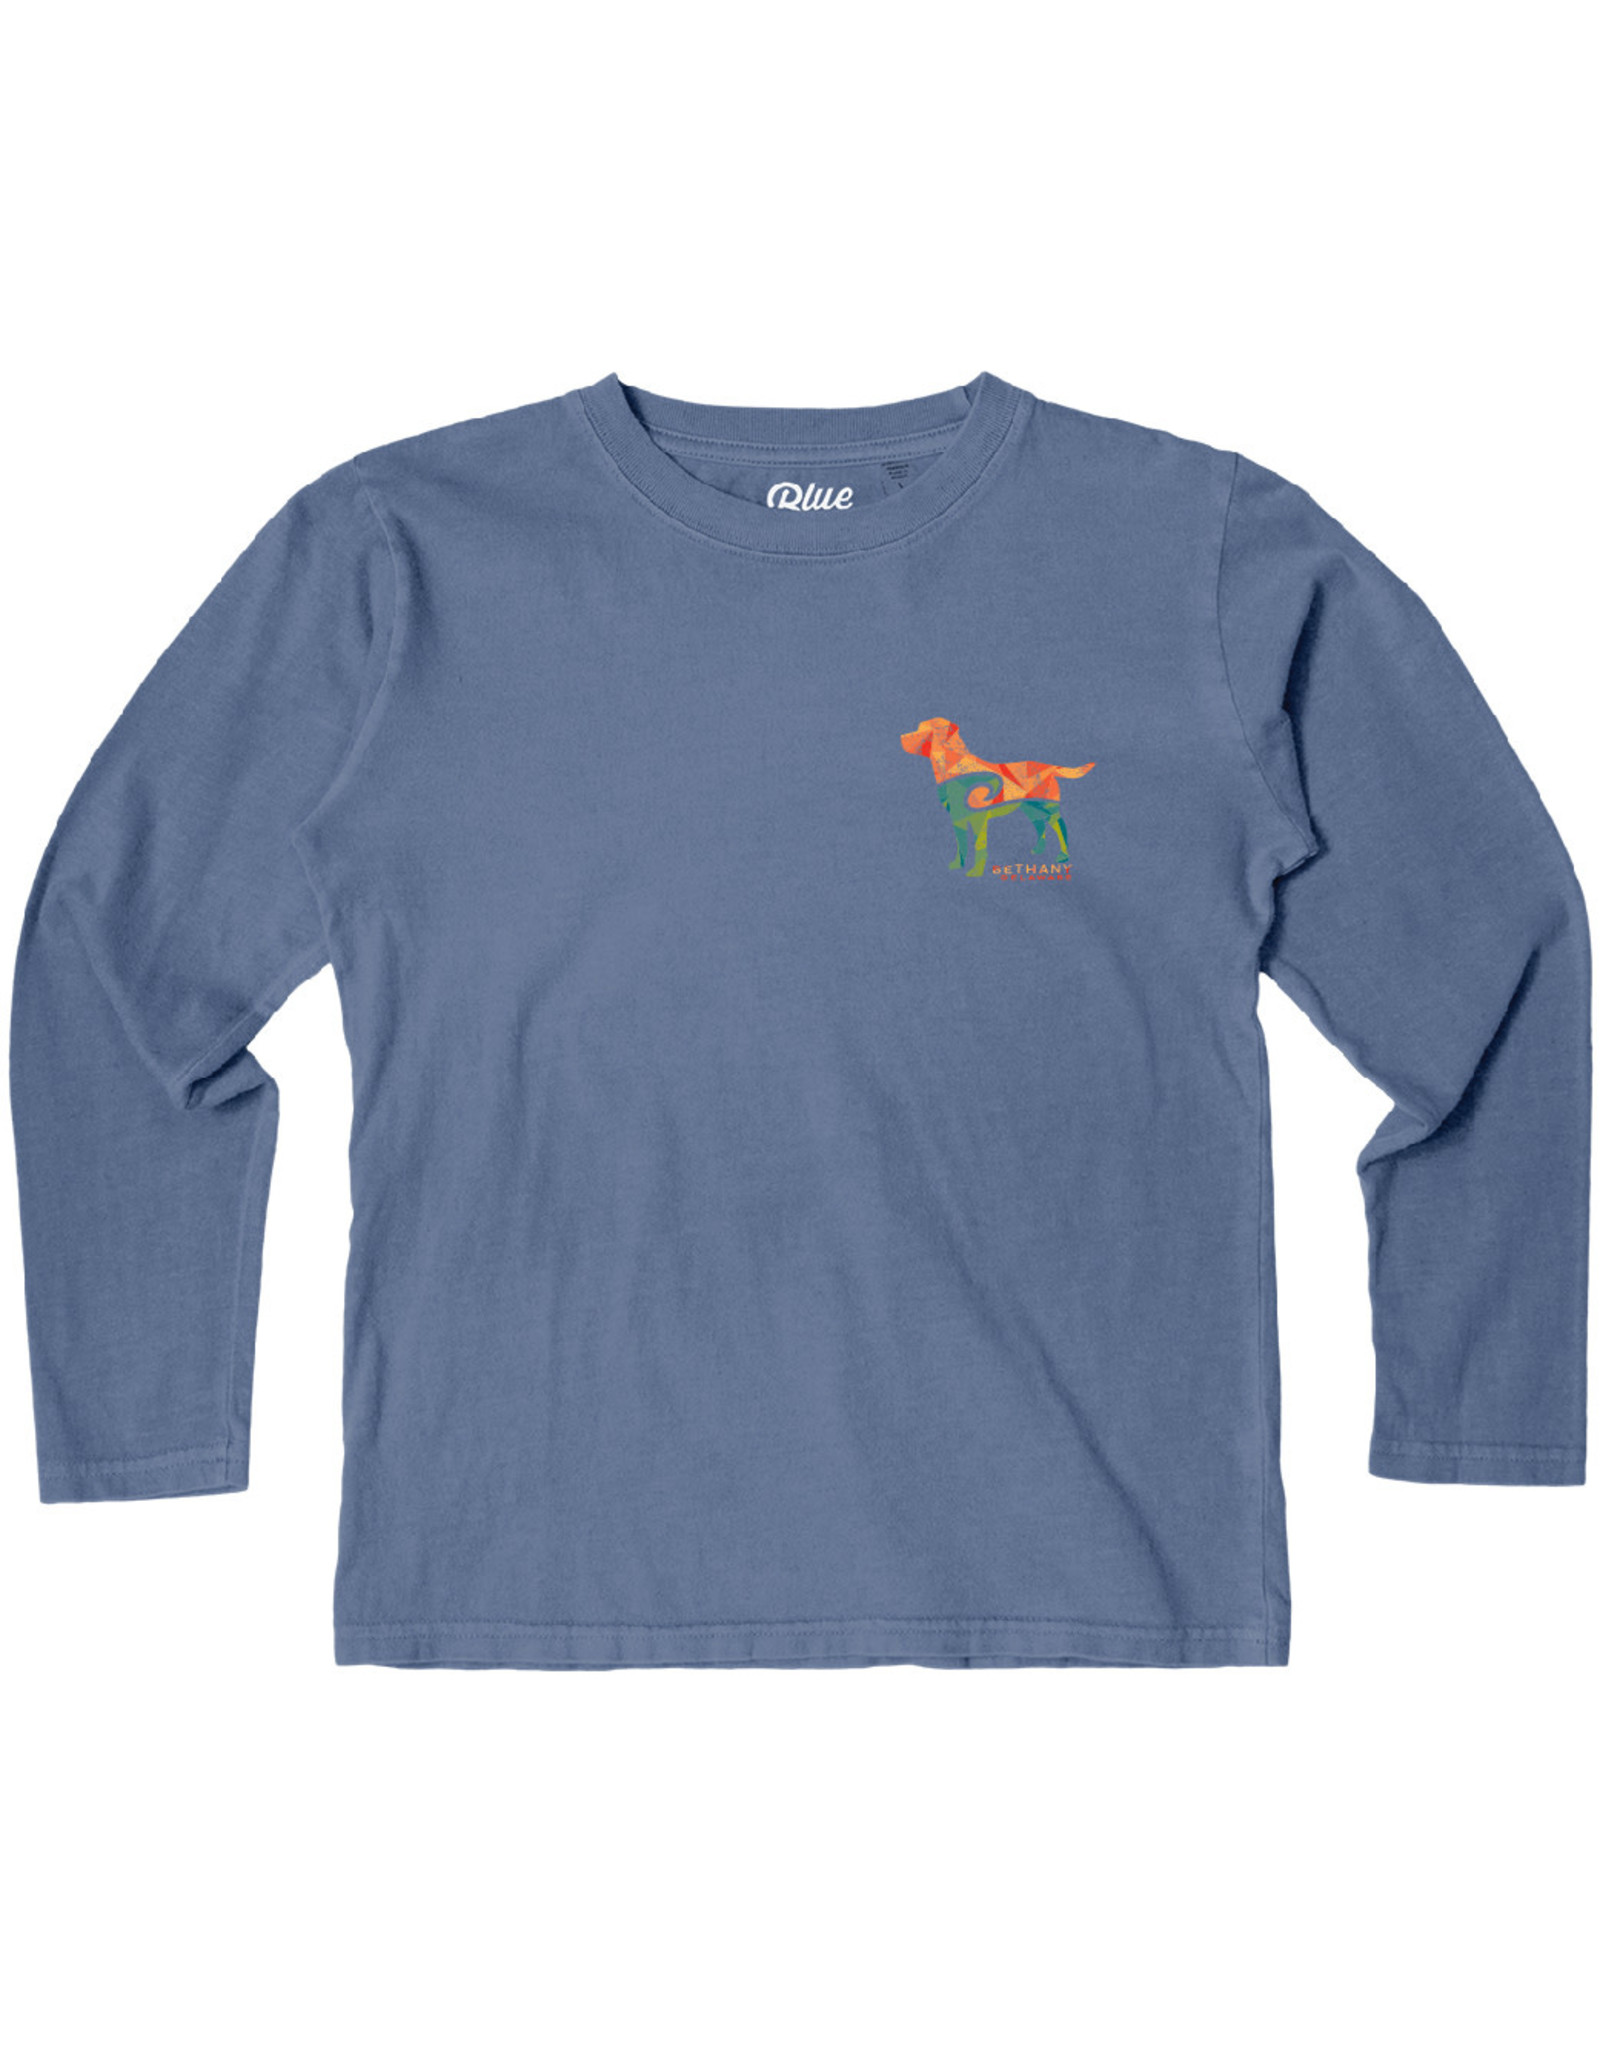 BLUE 84 BETHANY REMNANT LAB YOUTH LS TEE